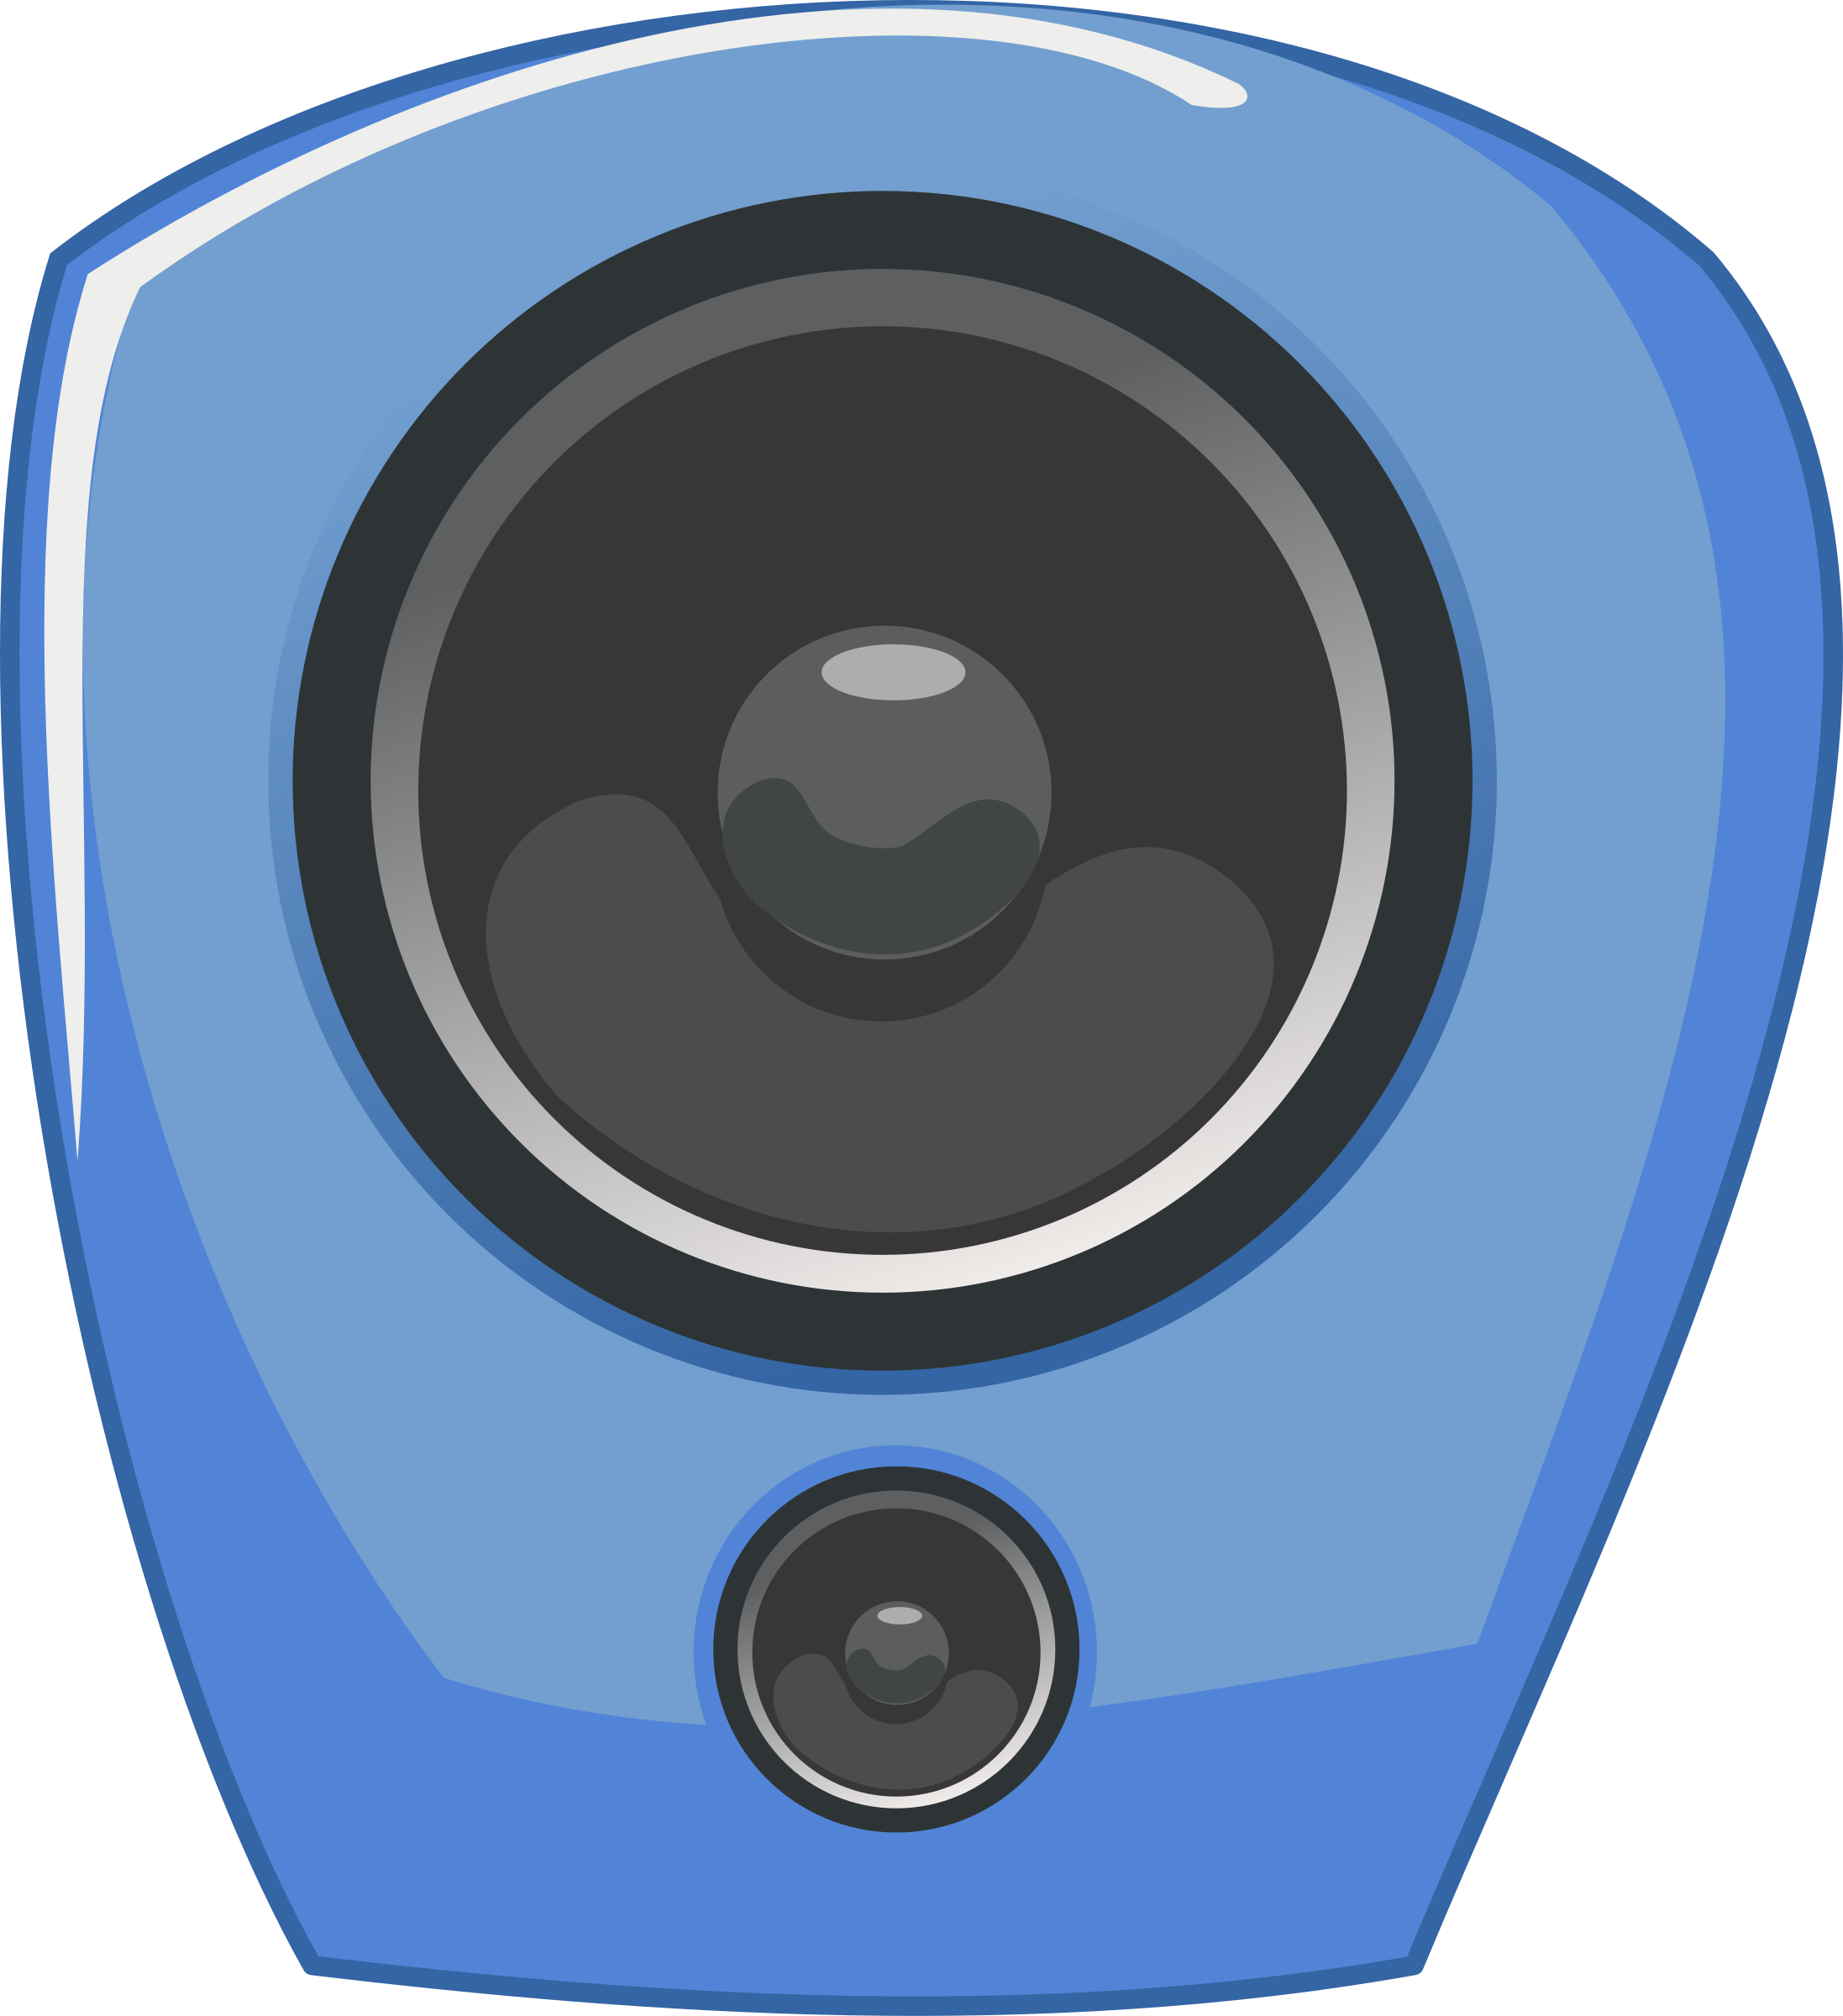 loudspeaker in comic style by rg1024